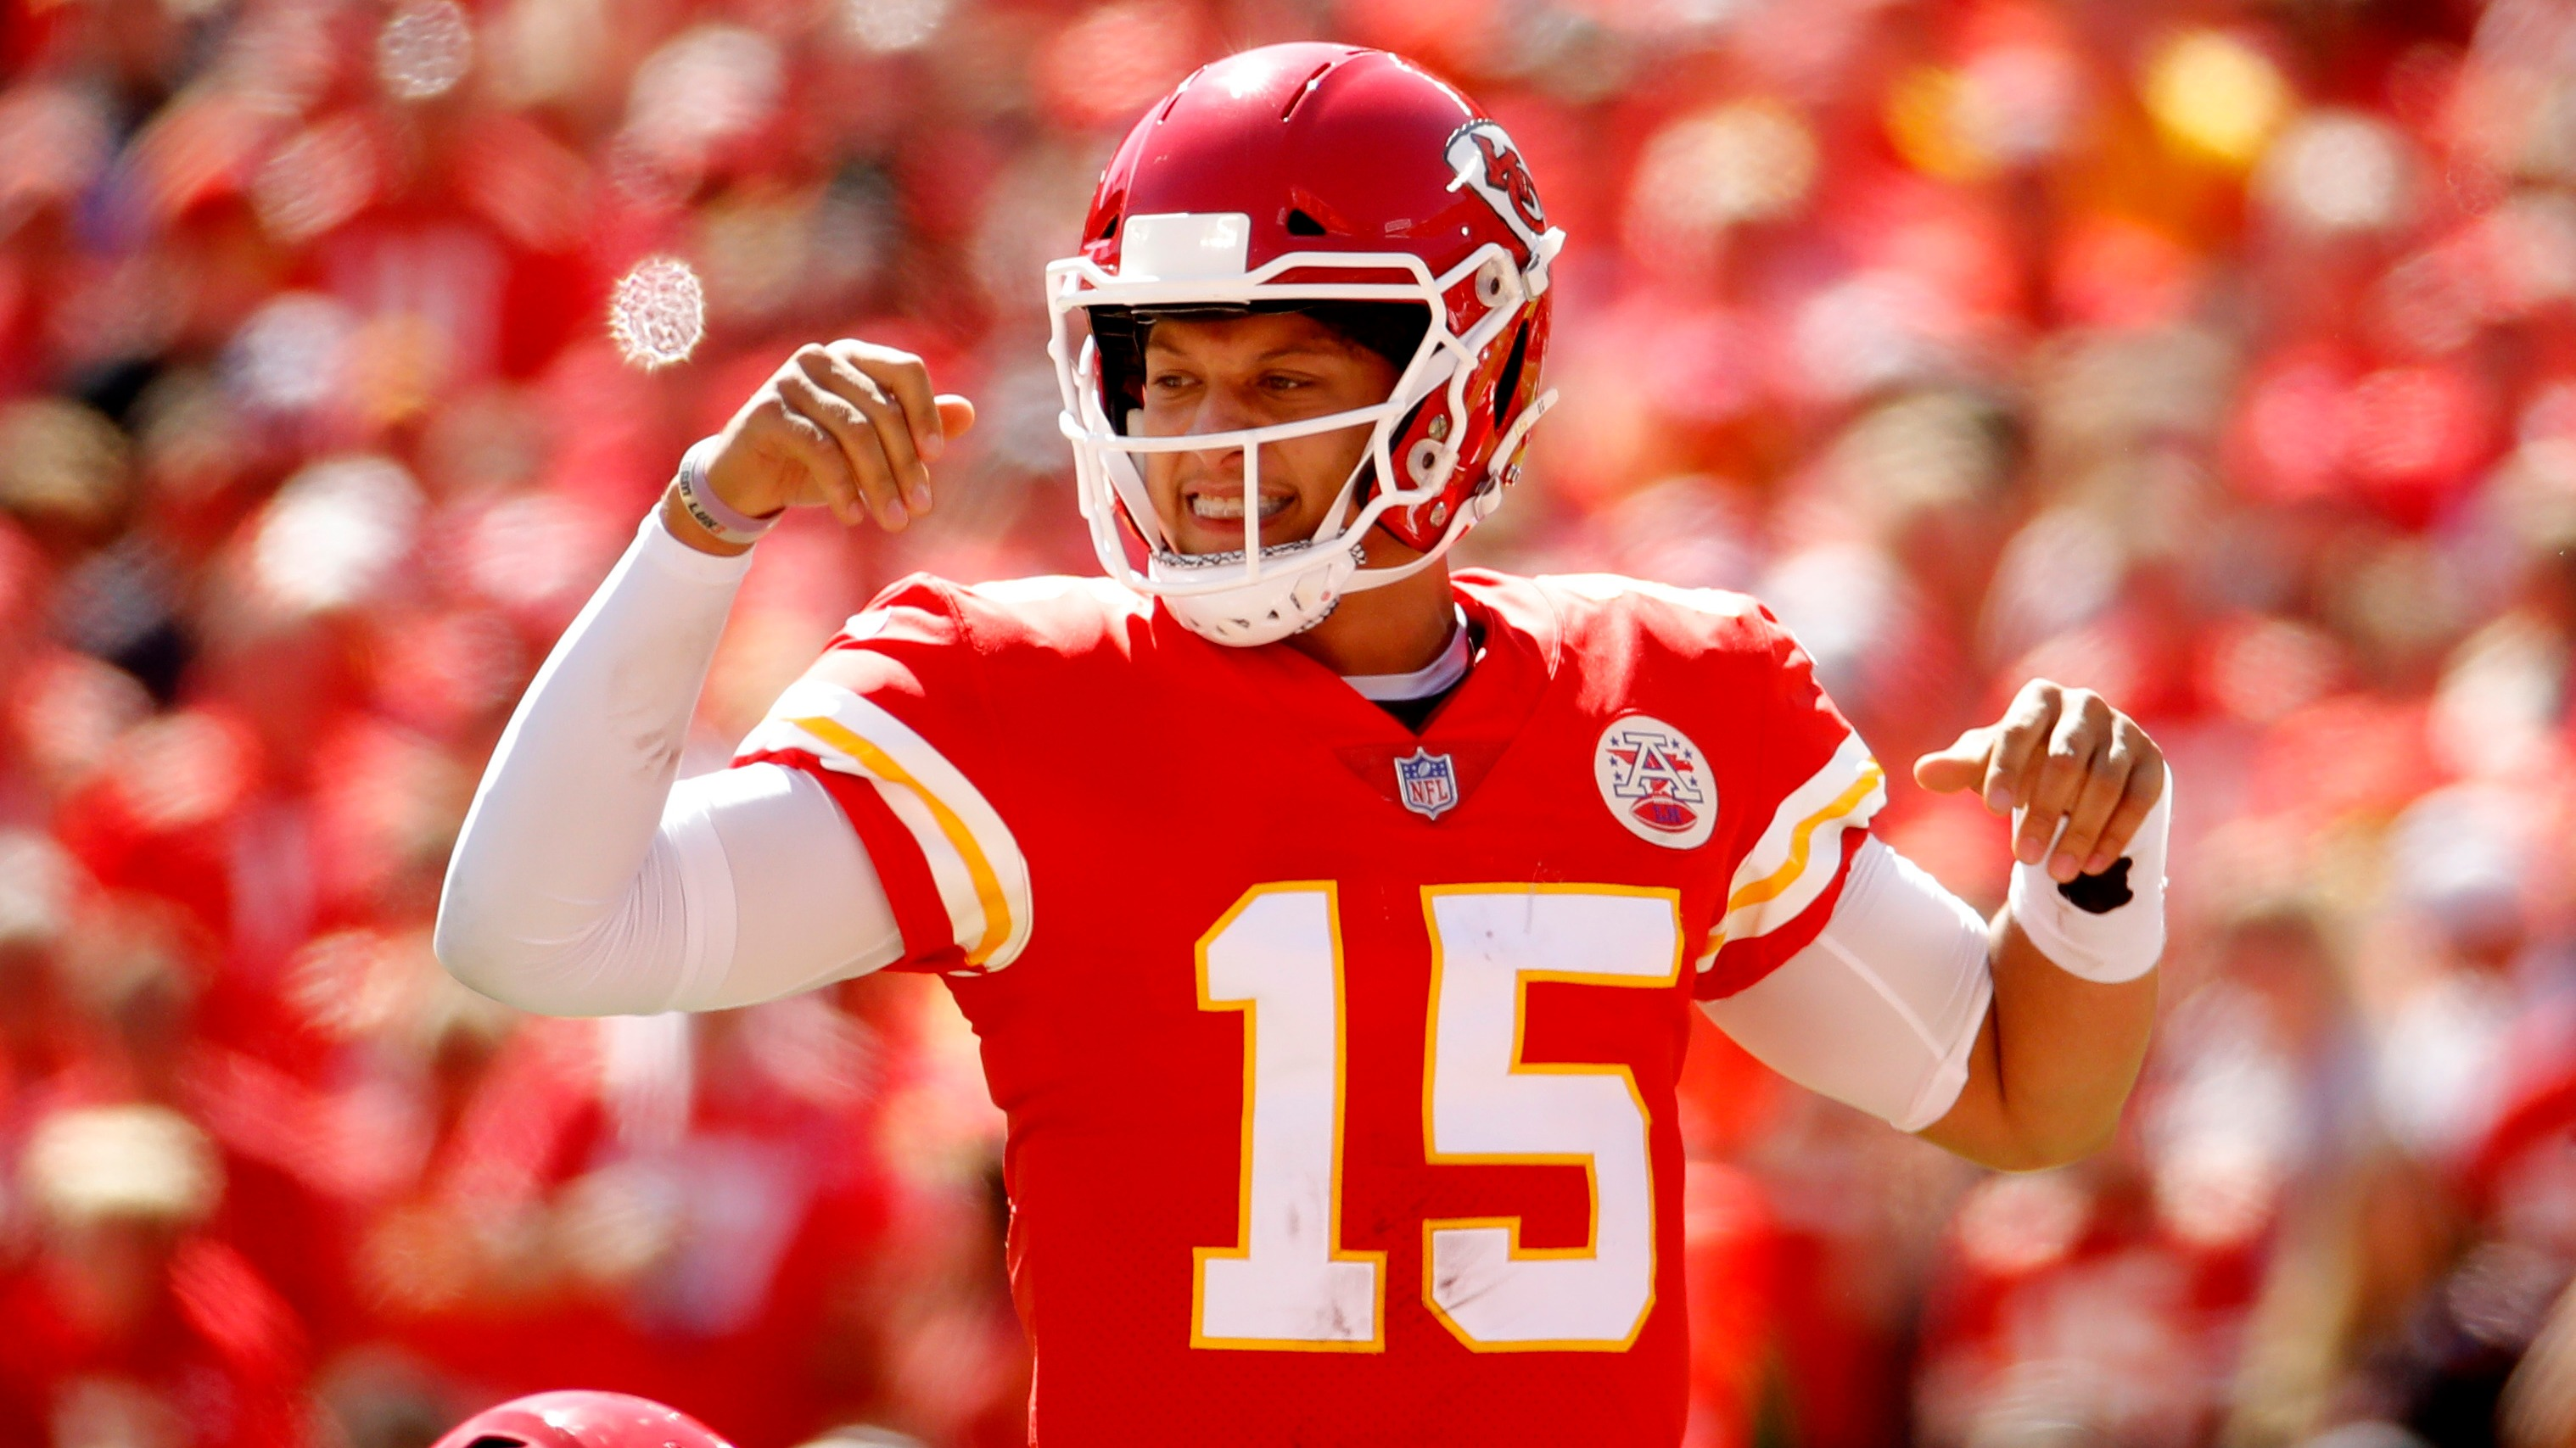 NFL Week 5 Sunday early betting lines, odds